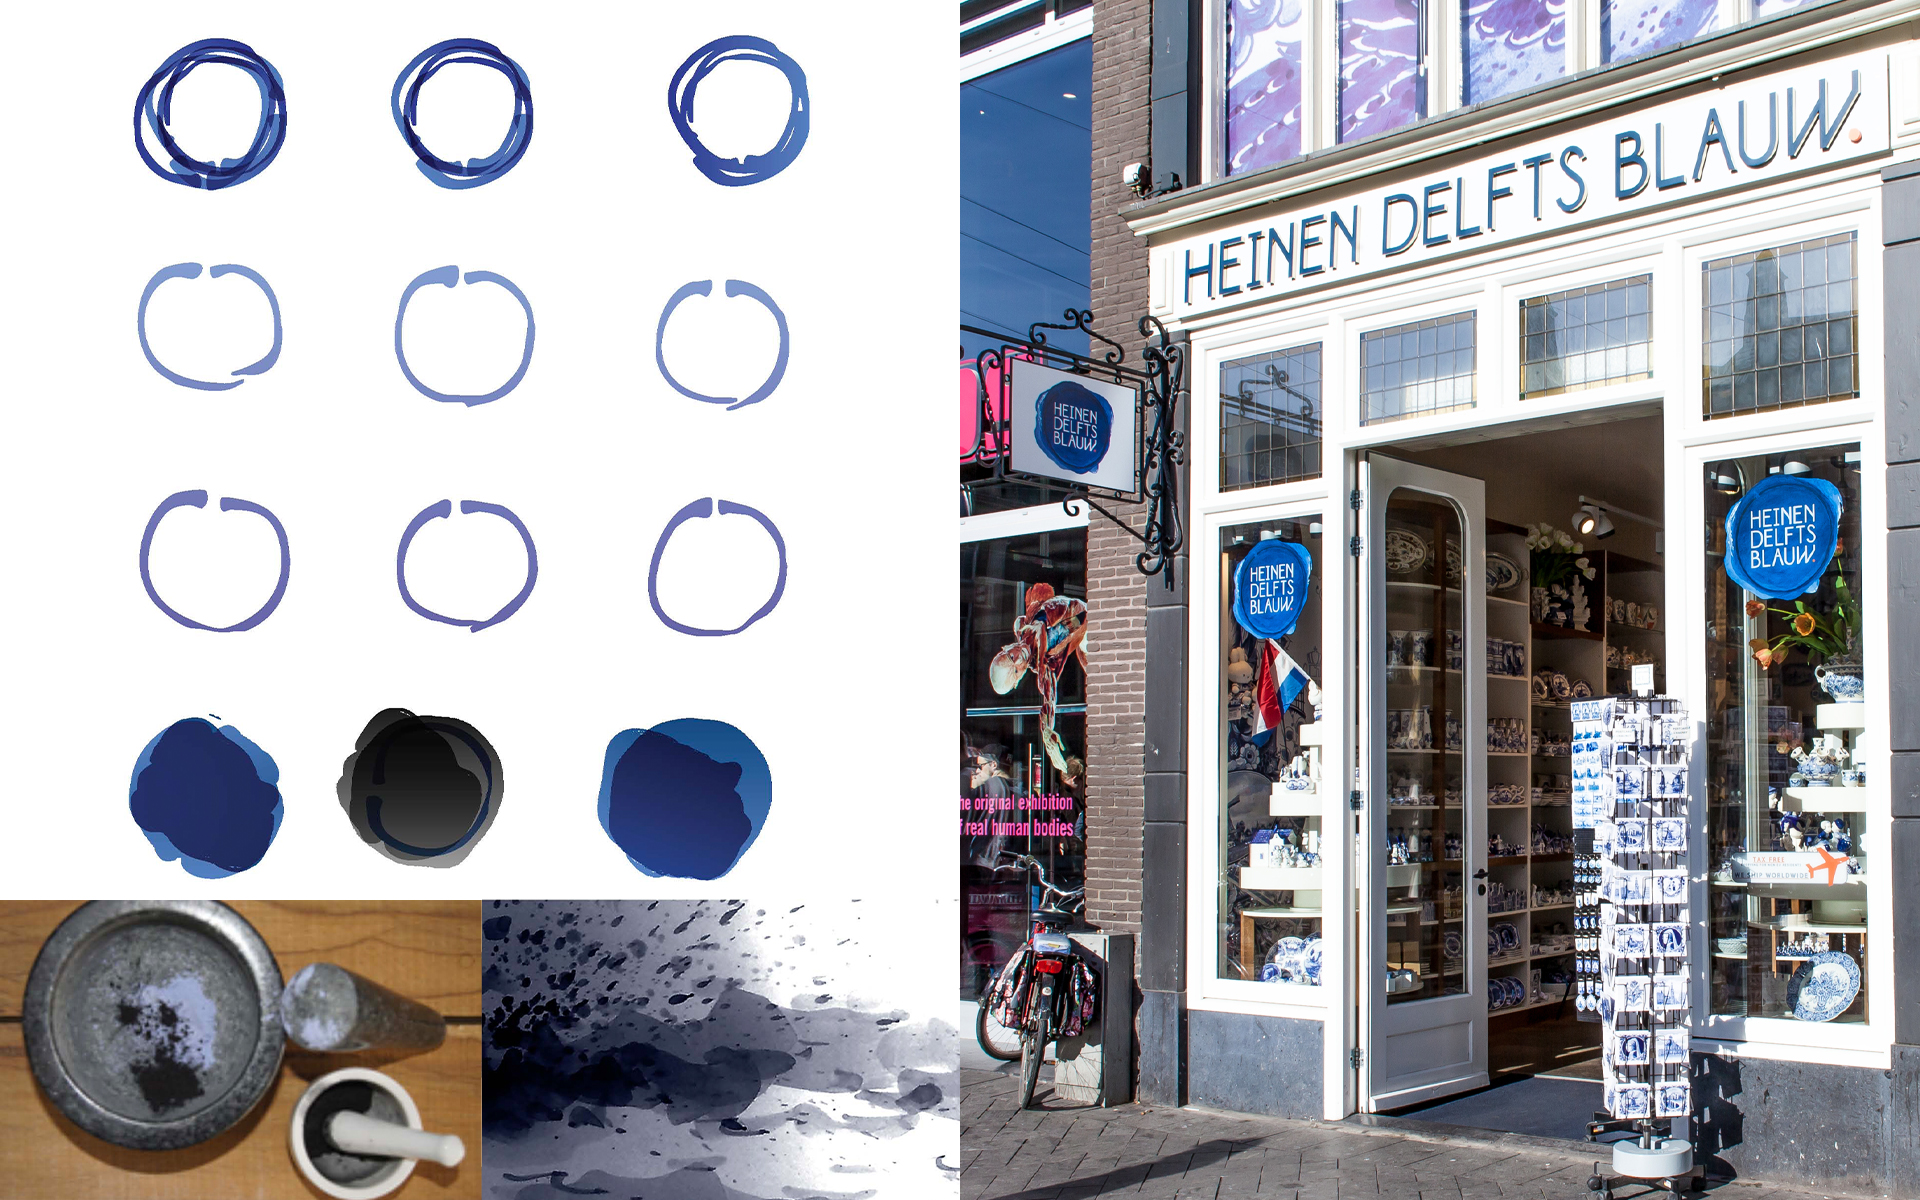 Heinen Delfts Blauw DAY Creative Brand Design Creating new traditions research